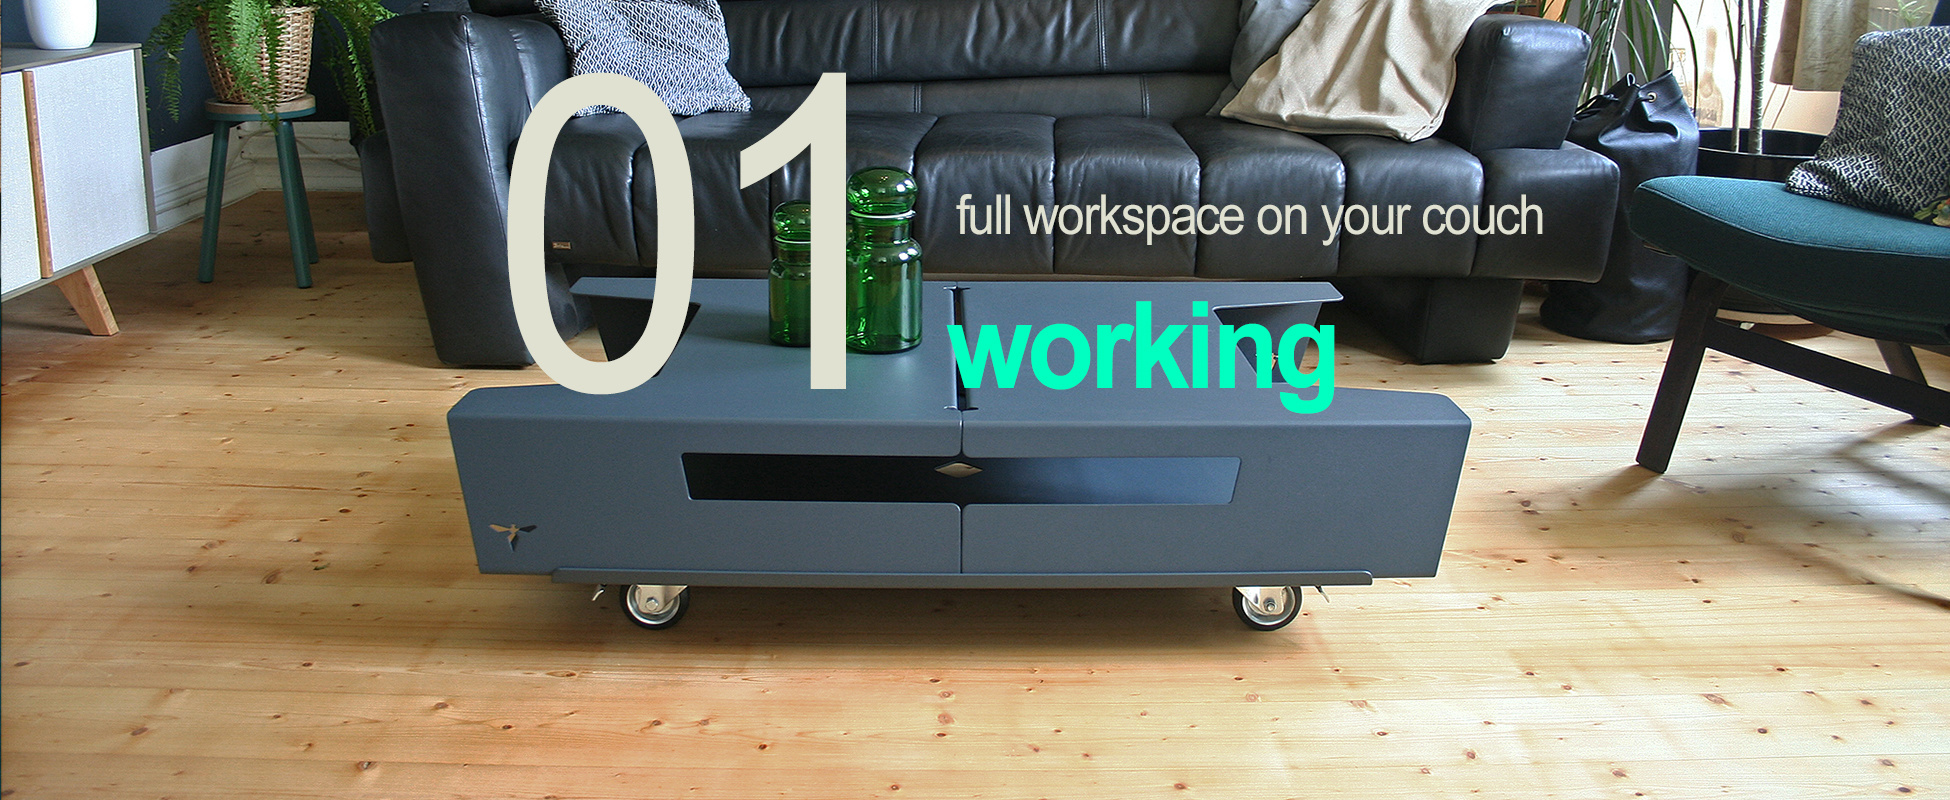 Working- full workspace on your couch